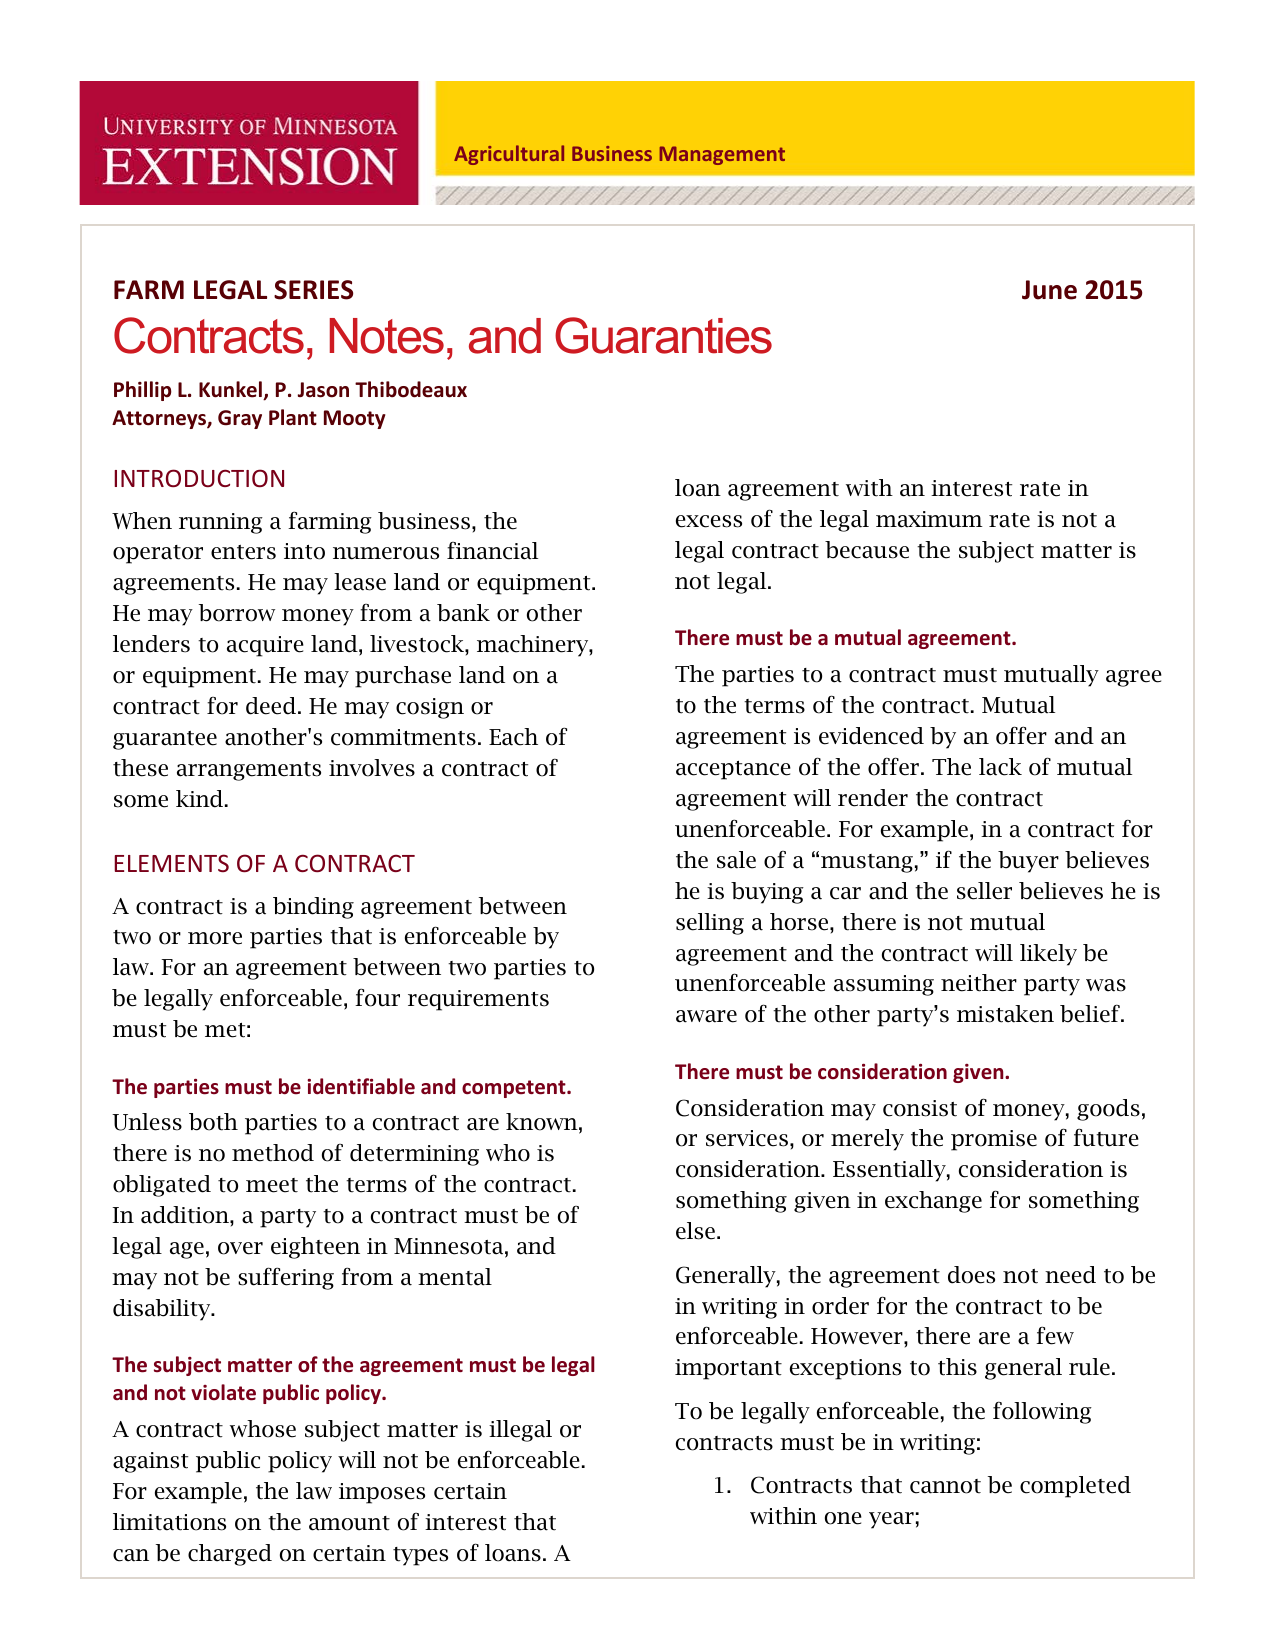 Contracts Notes And Guaranties University Of Minnesota